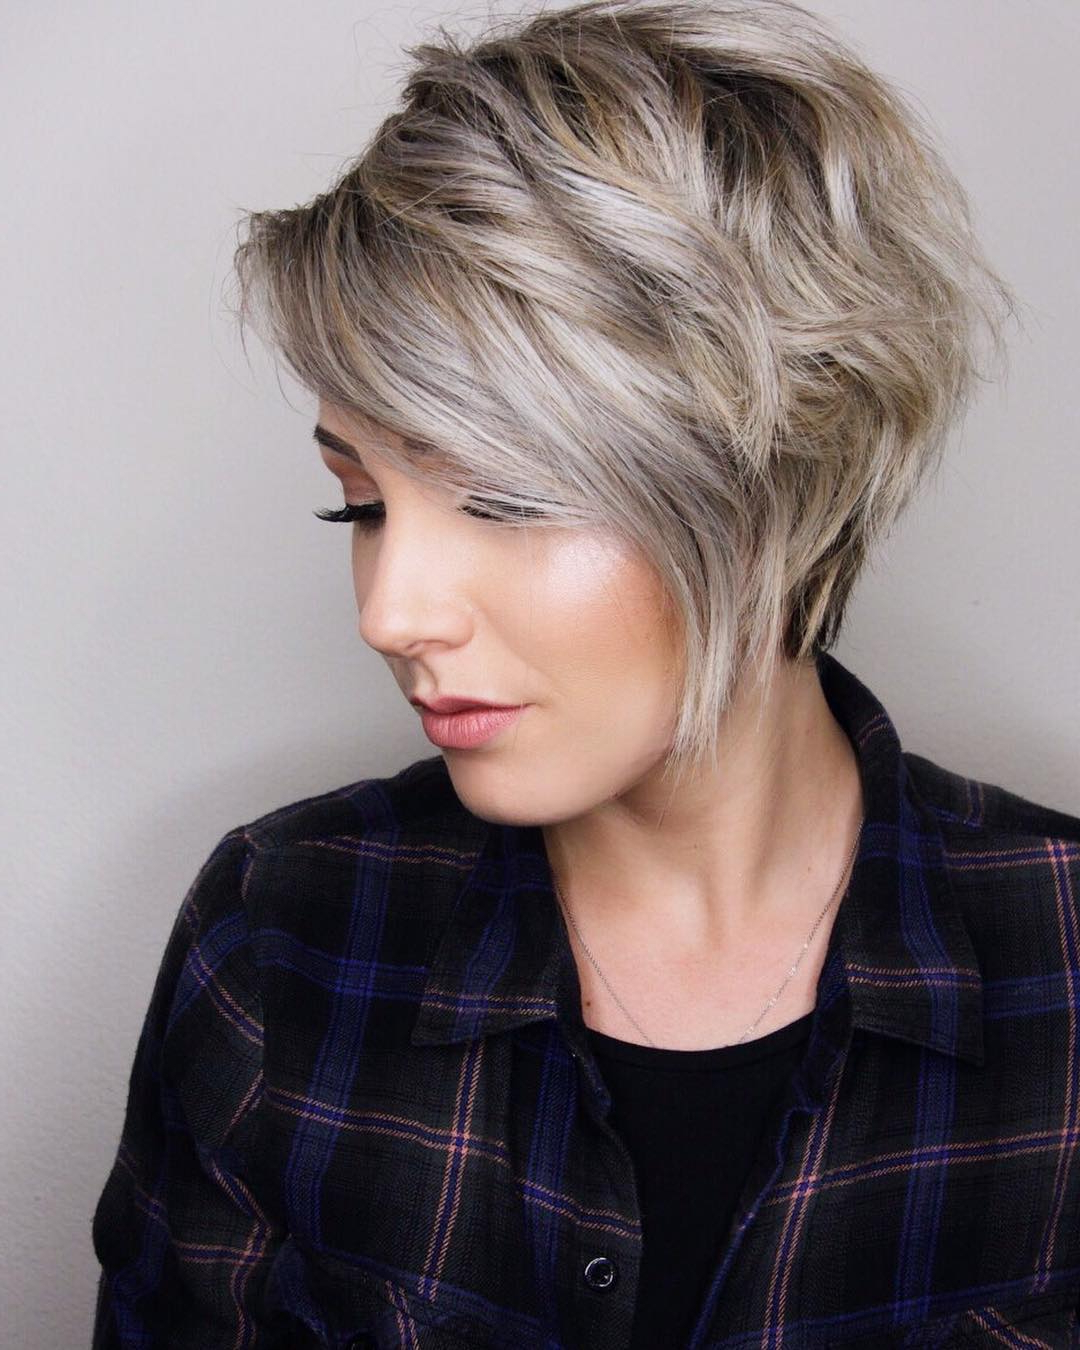 10 Trendy Layered Short Haircut Ideas For 2017  2018 – 'extra In Layered Tapered Pixie Hairstyles For Thick Hair (View 3 of 20)